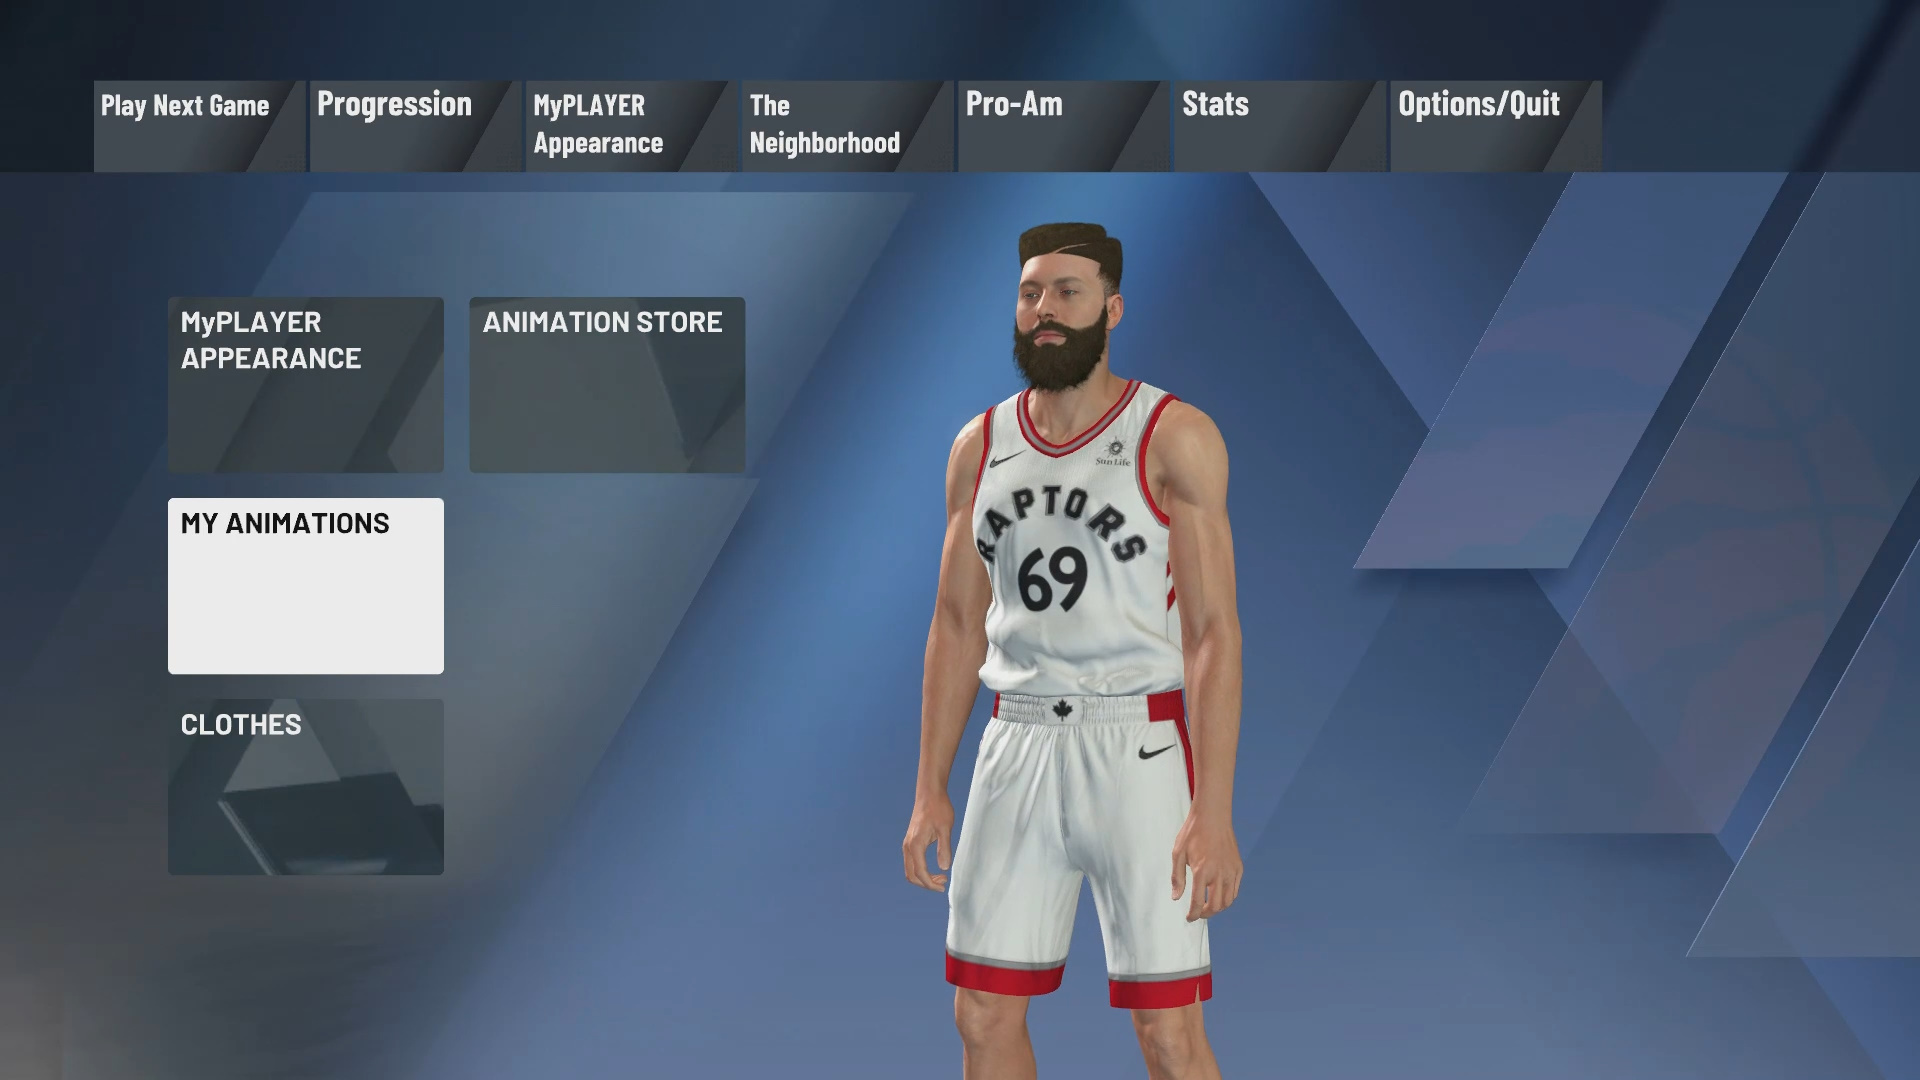 How To Change Celebrations In Nba 2k20